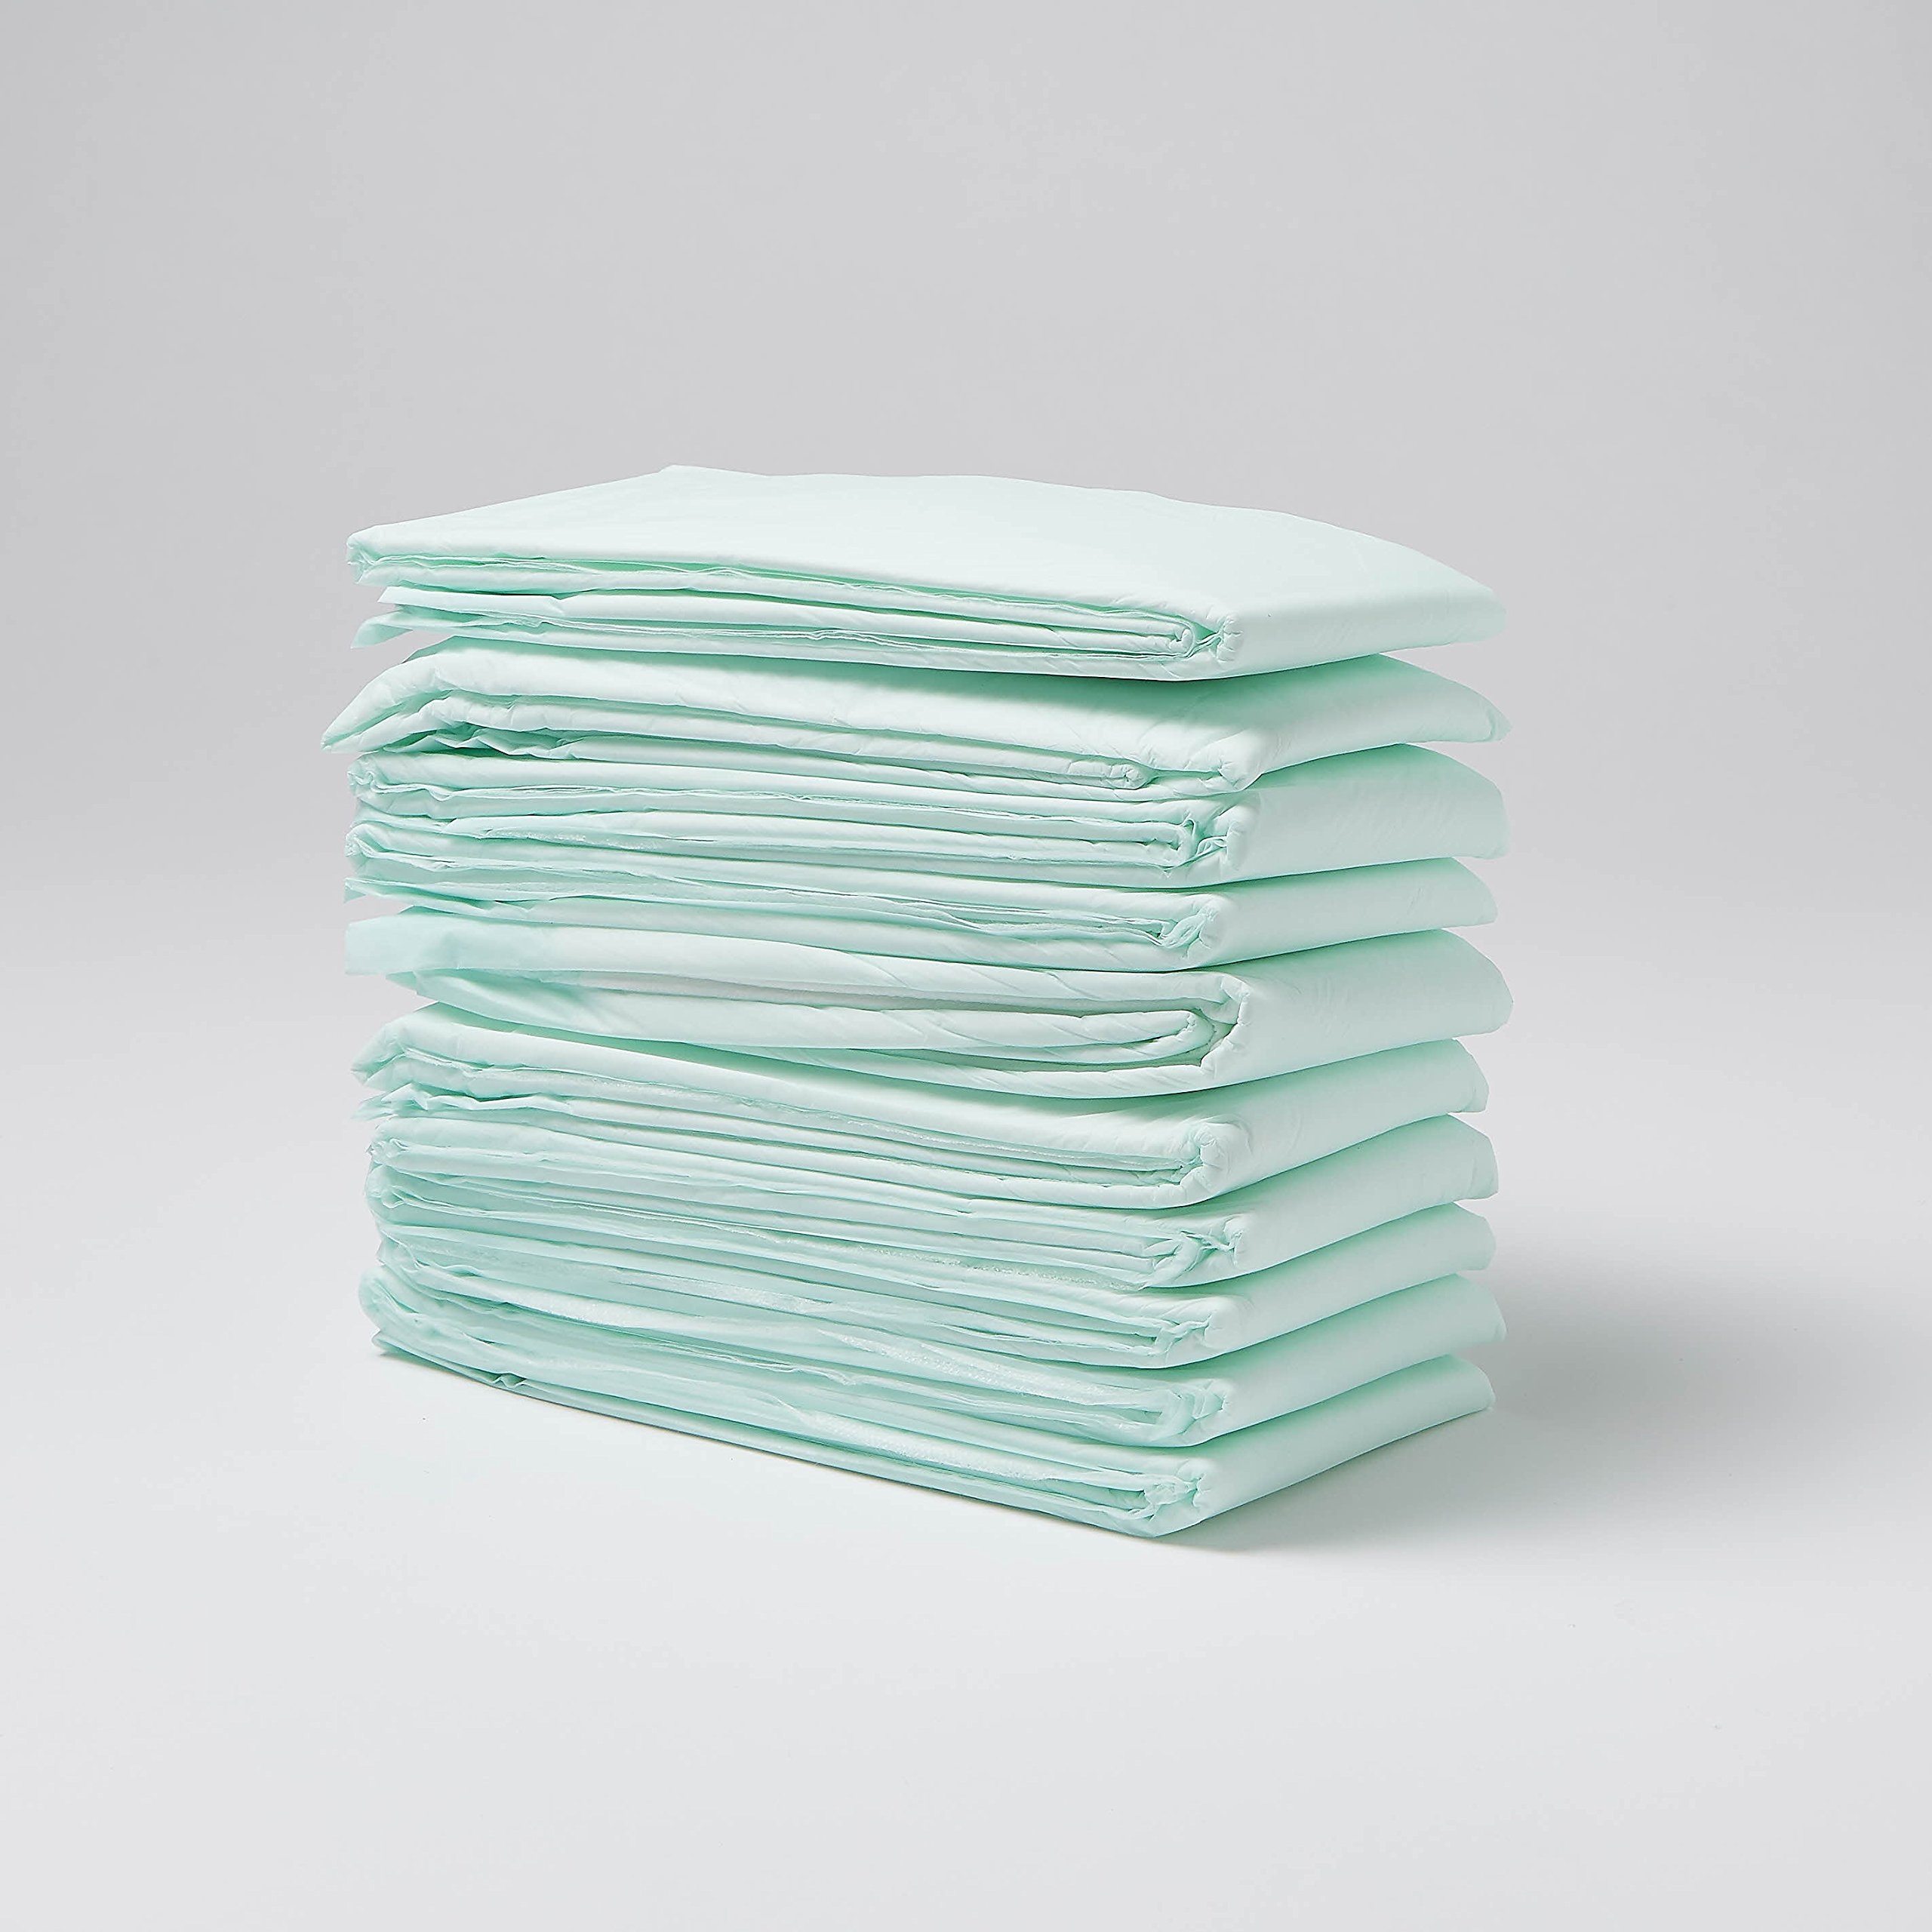 Medline Fluff Disposable Underpad, Moderate Absorbency, Great for Changing Table and Surfaces, 30'' x 30'' (Pack of 90) by Medline (Image #2)